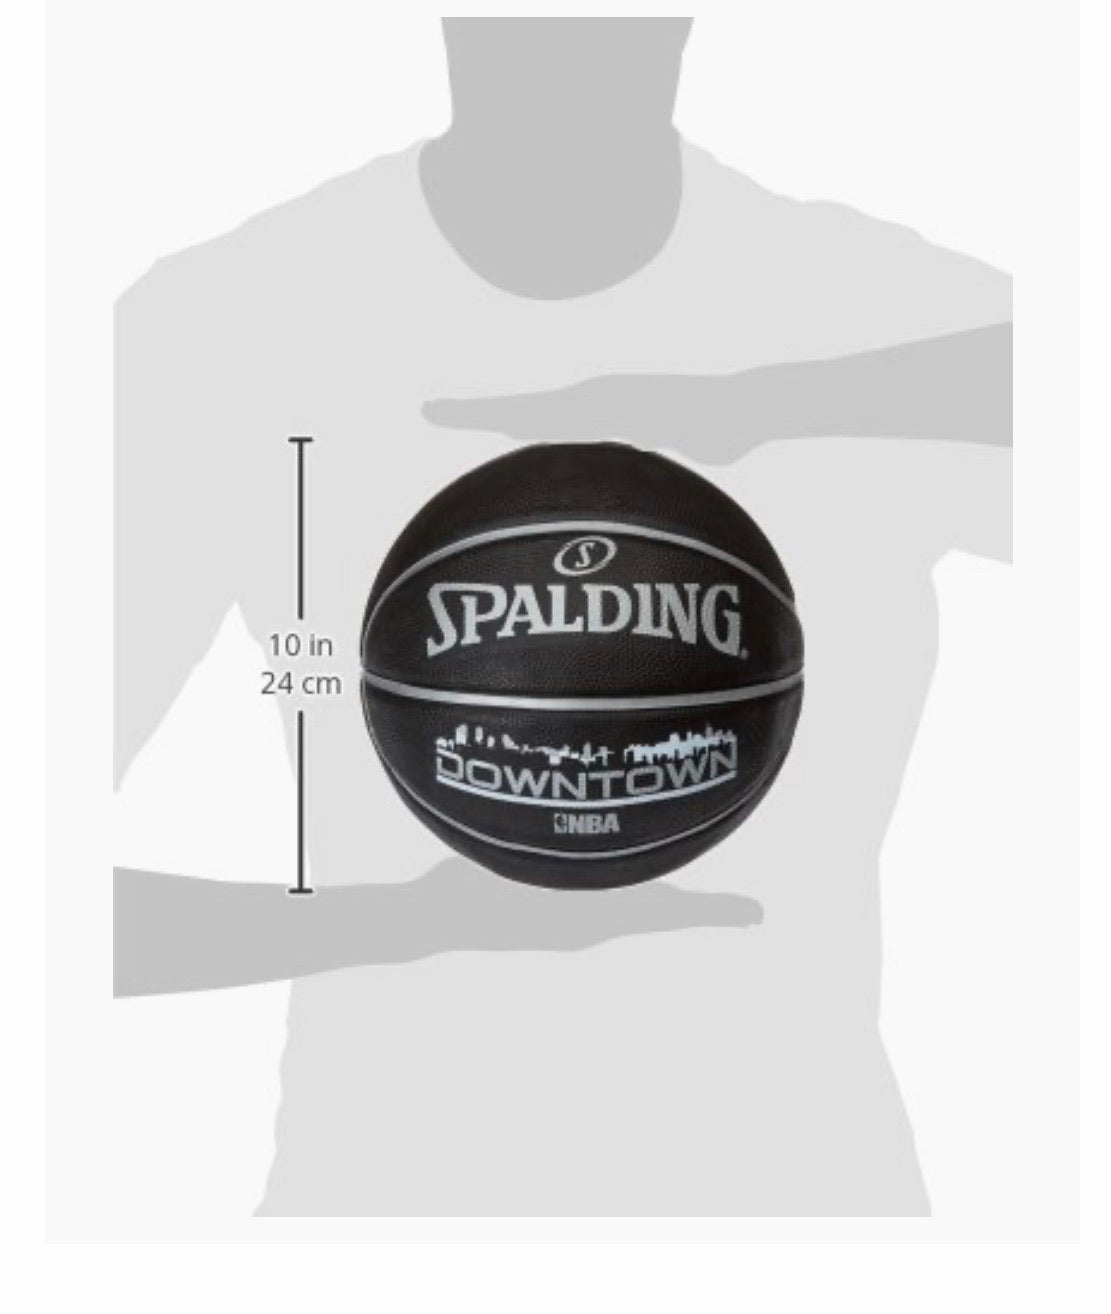 Spalding Downtown NBA black basketball size 7